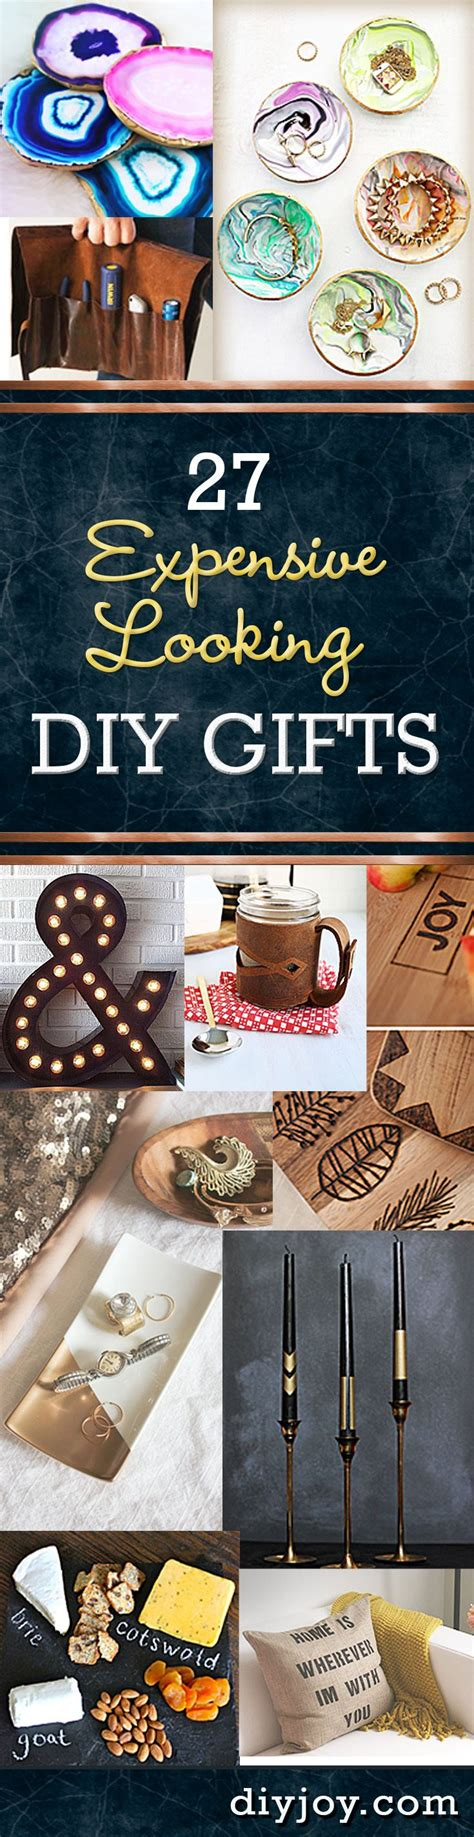 inexpensive diy gifts and creative crafts and projects